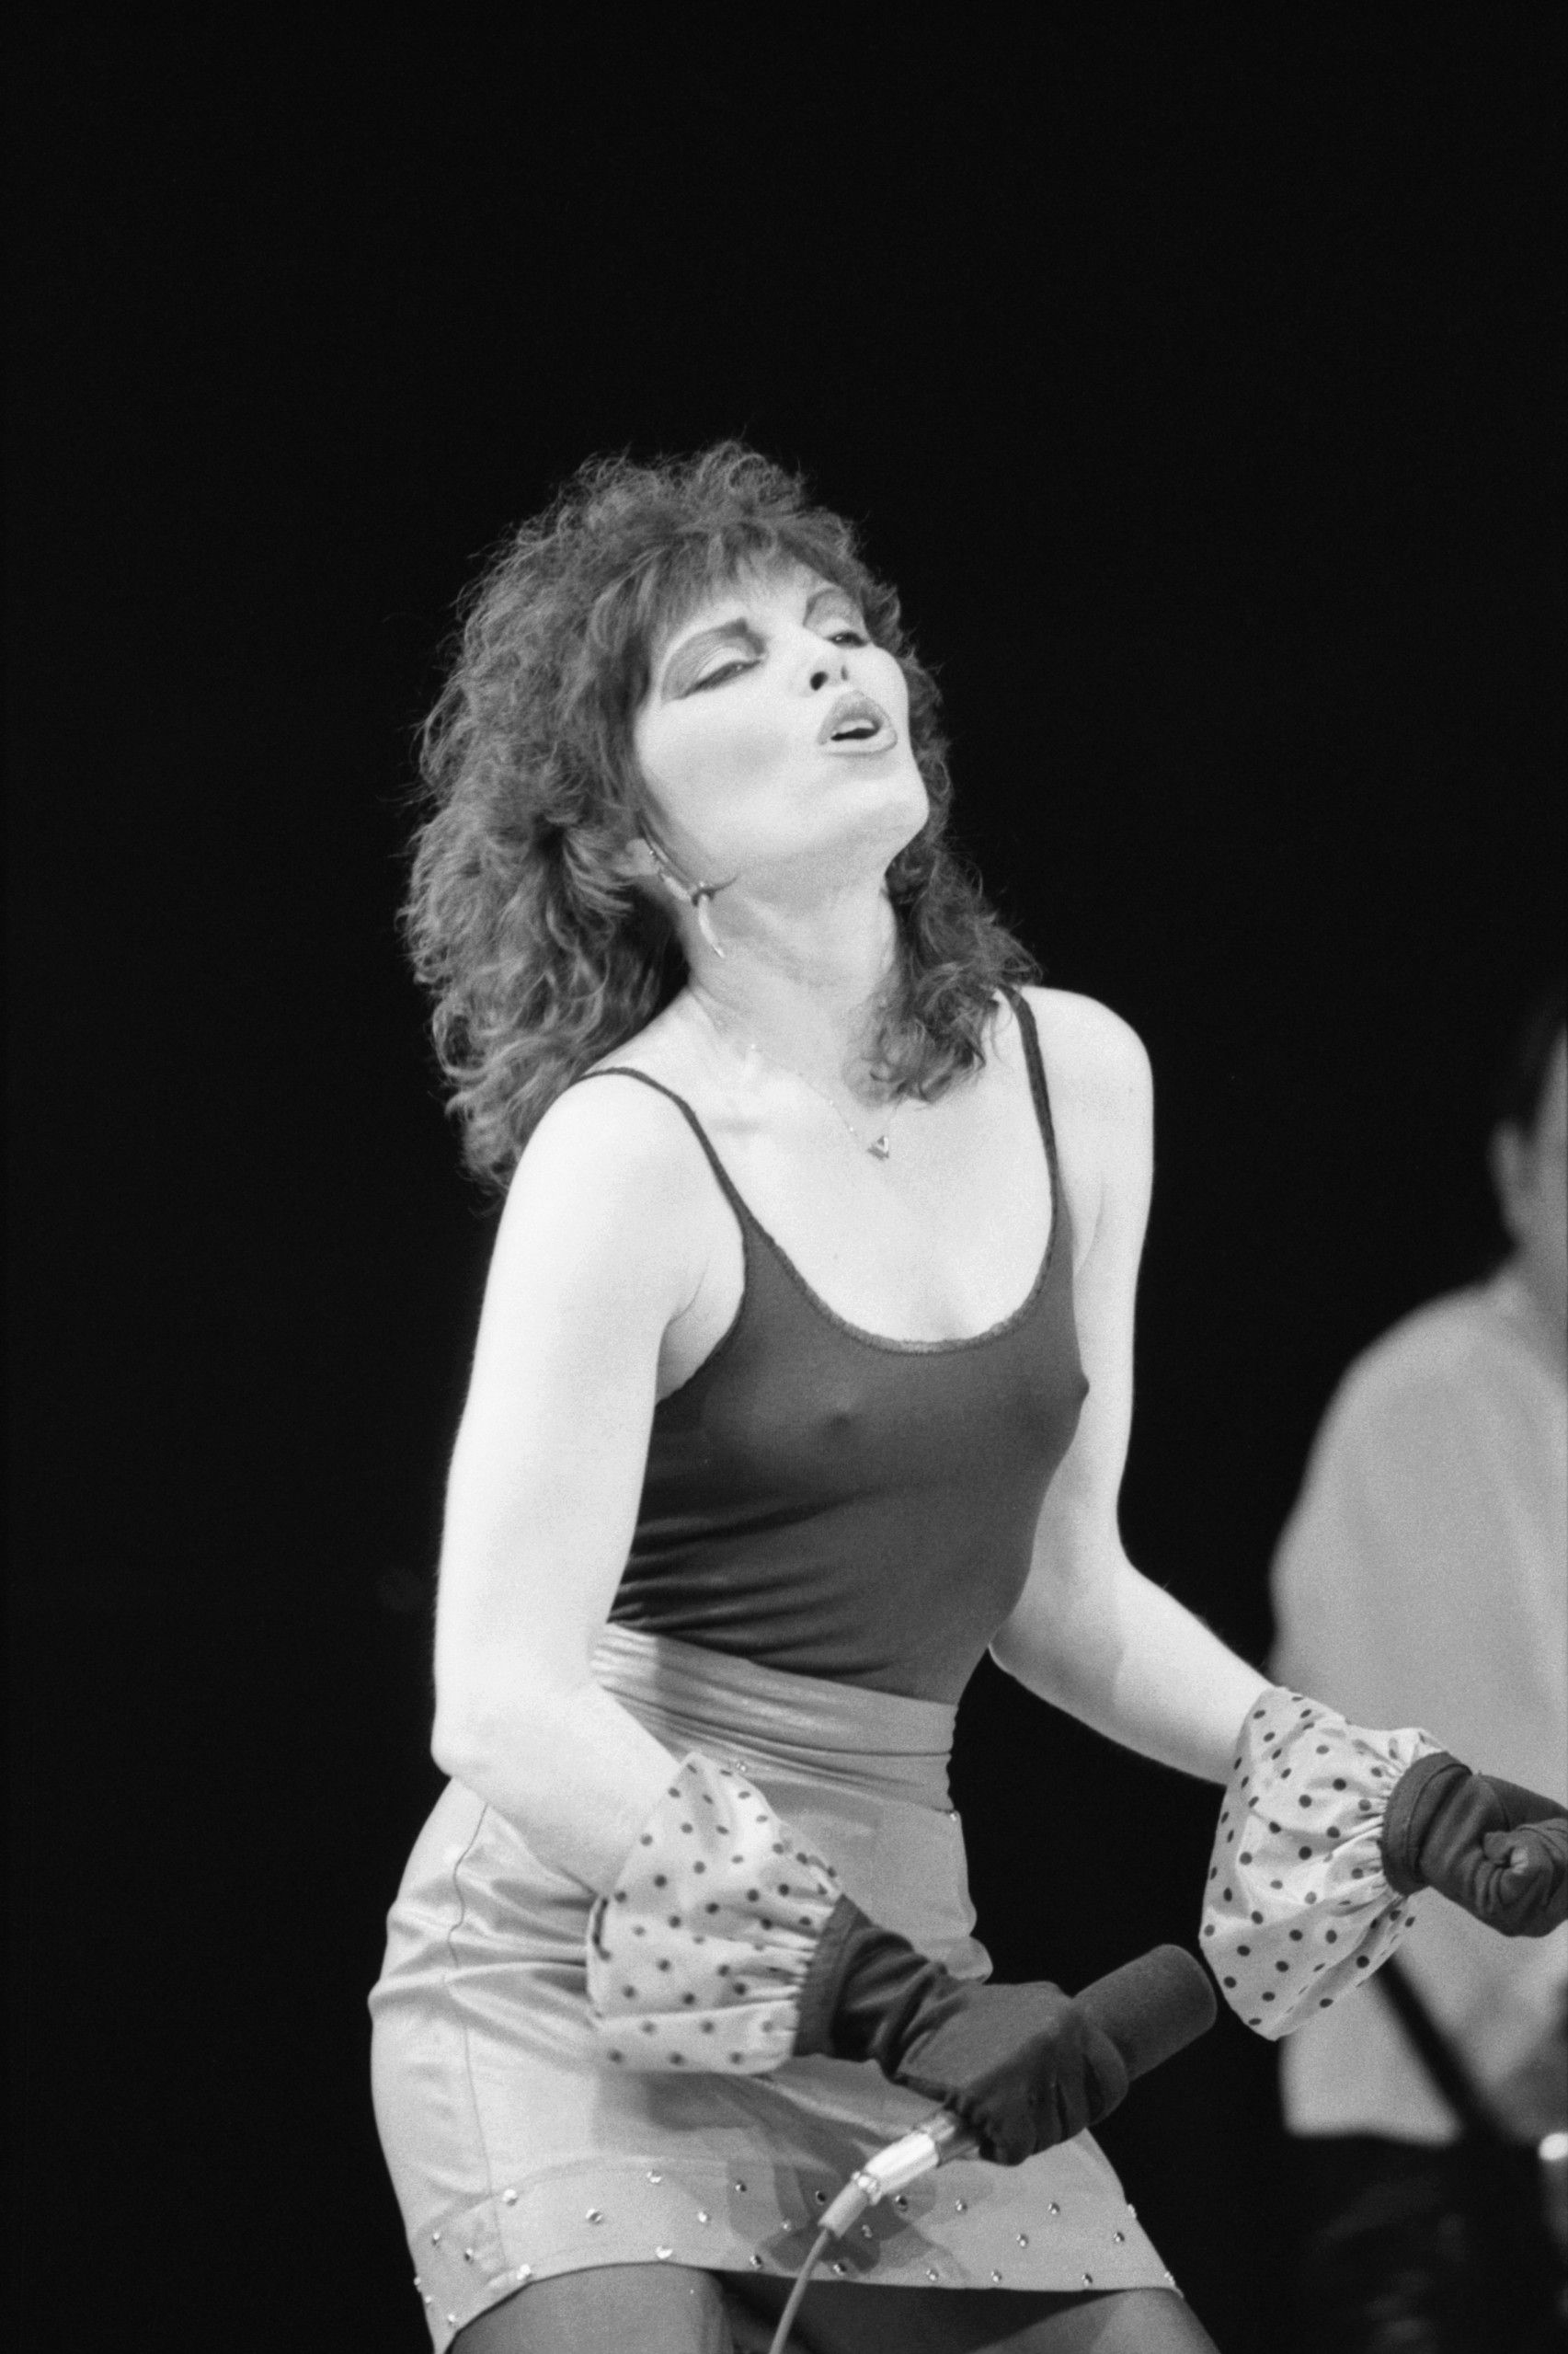 pat benatar nipples black and white